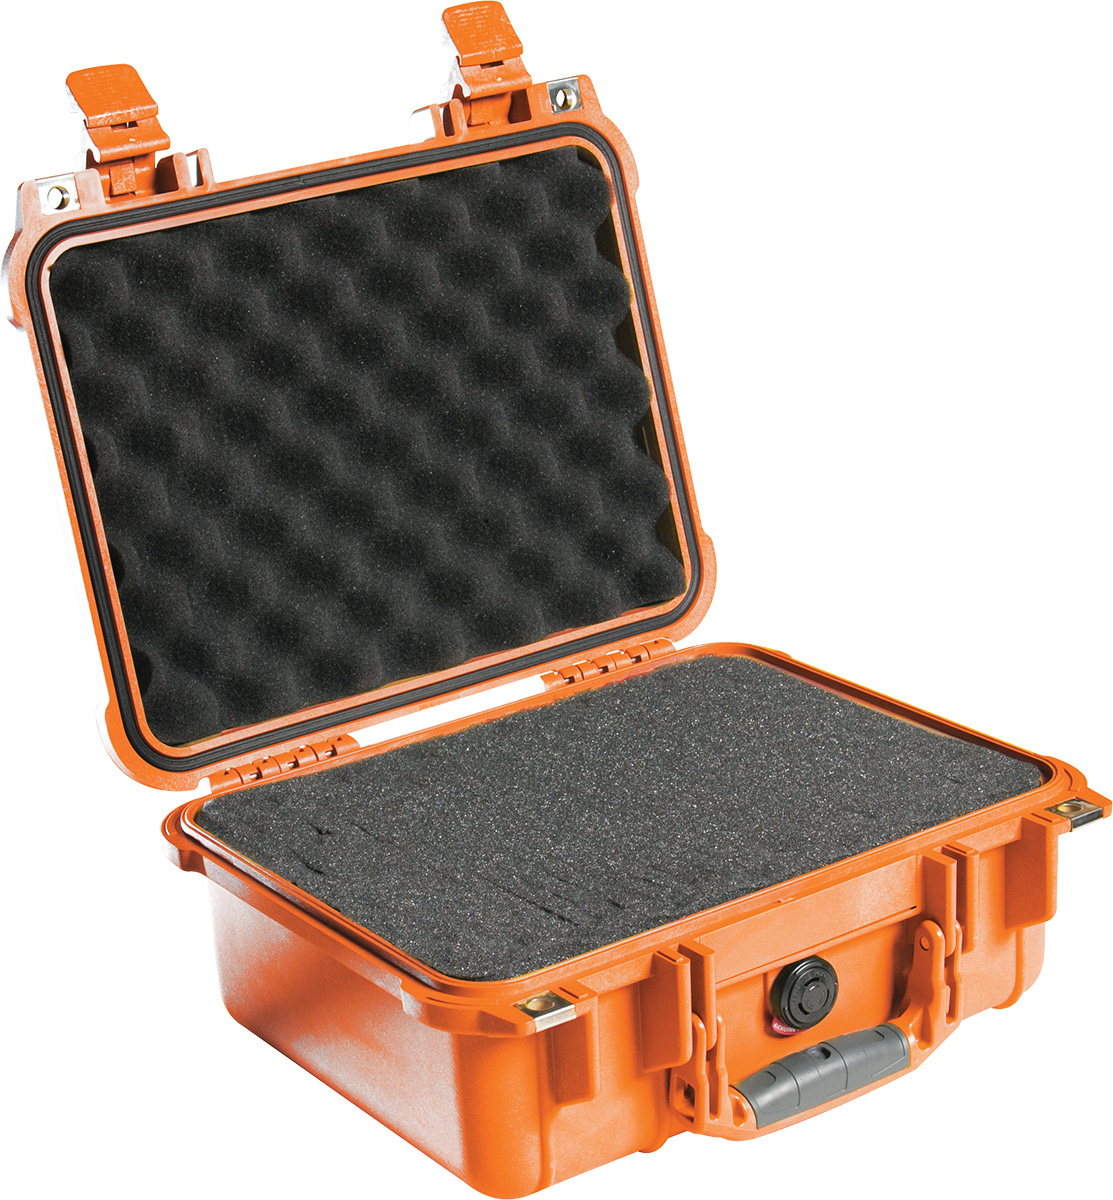 pelican 1400 orange protector extreme case